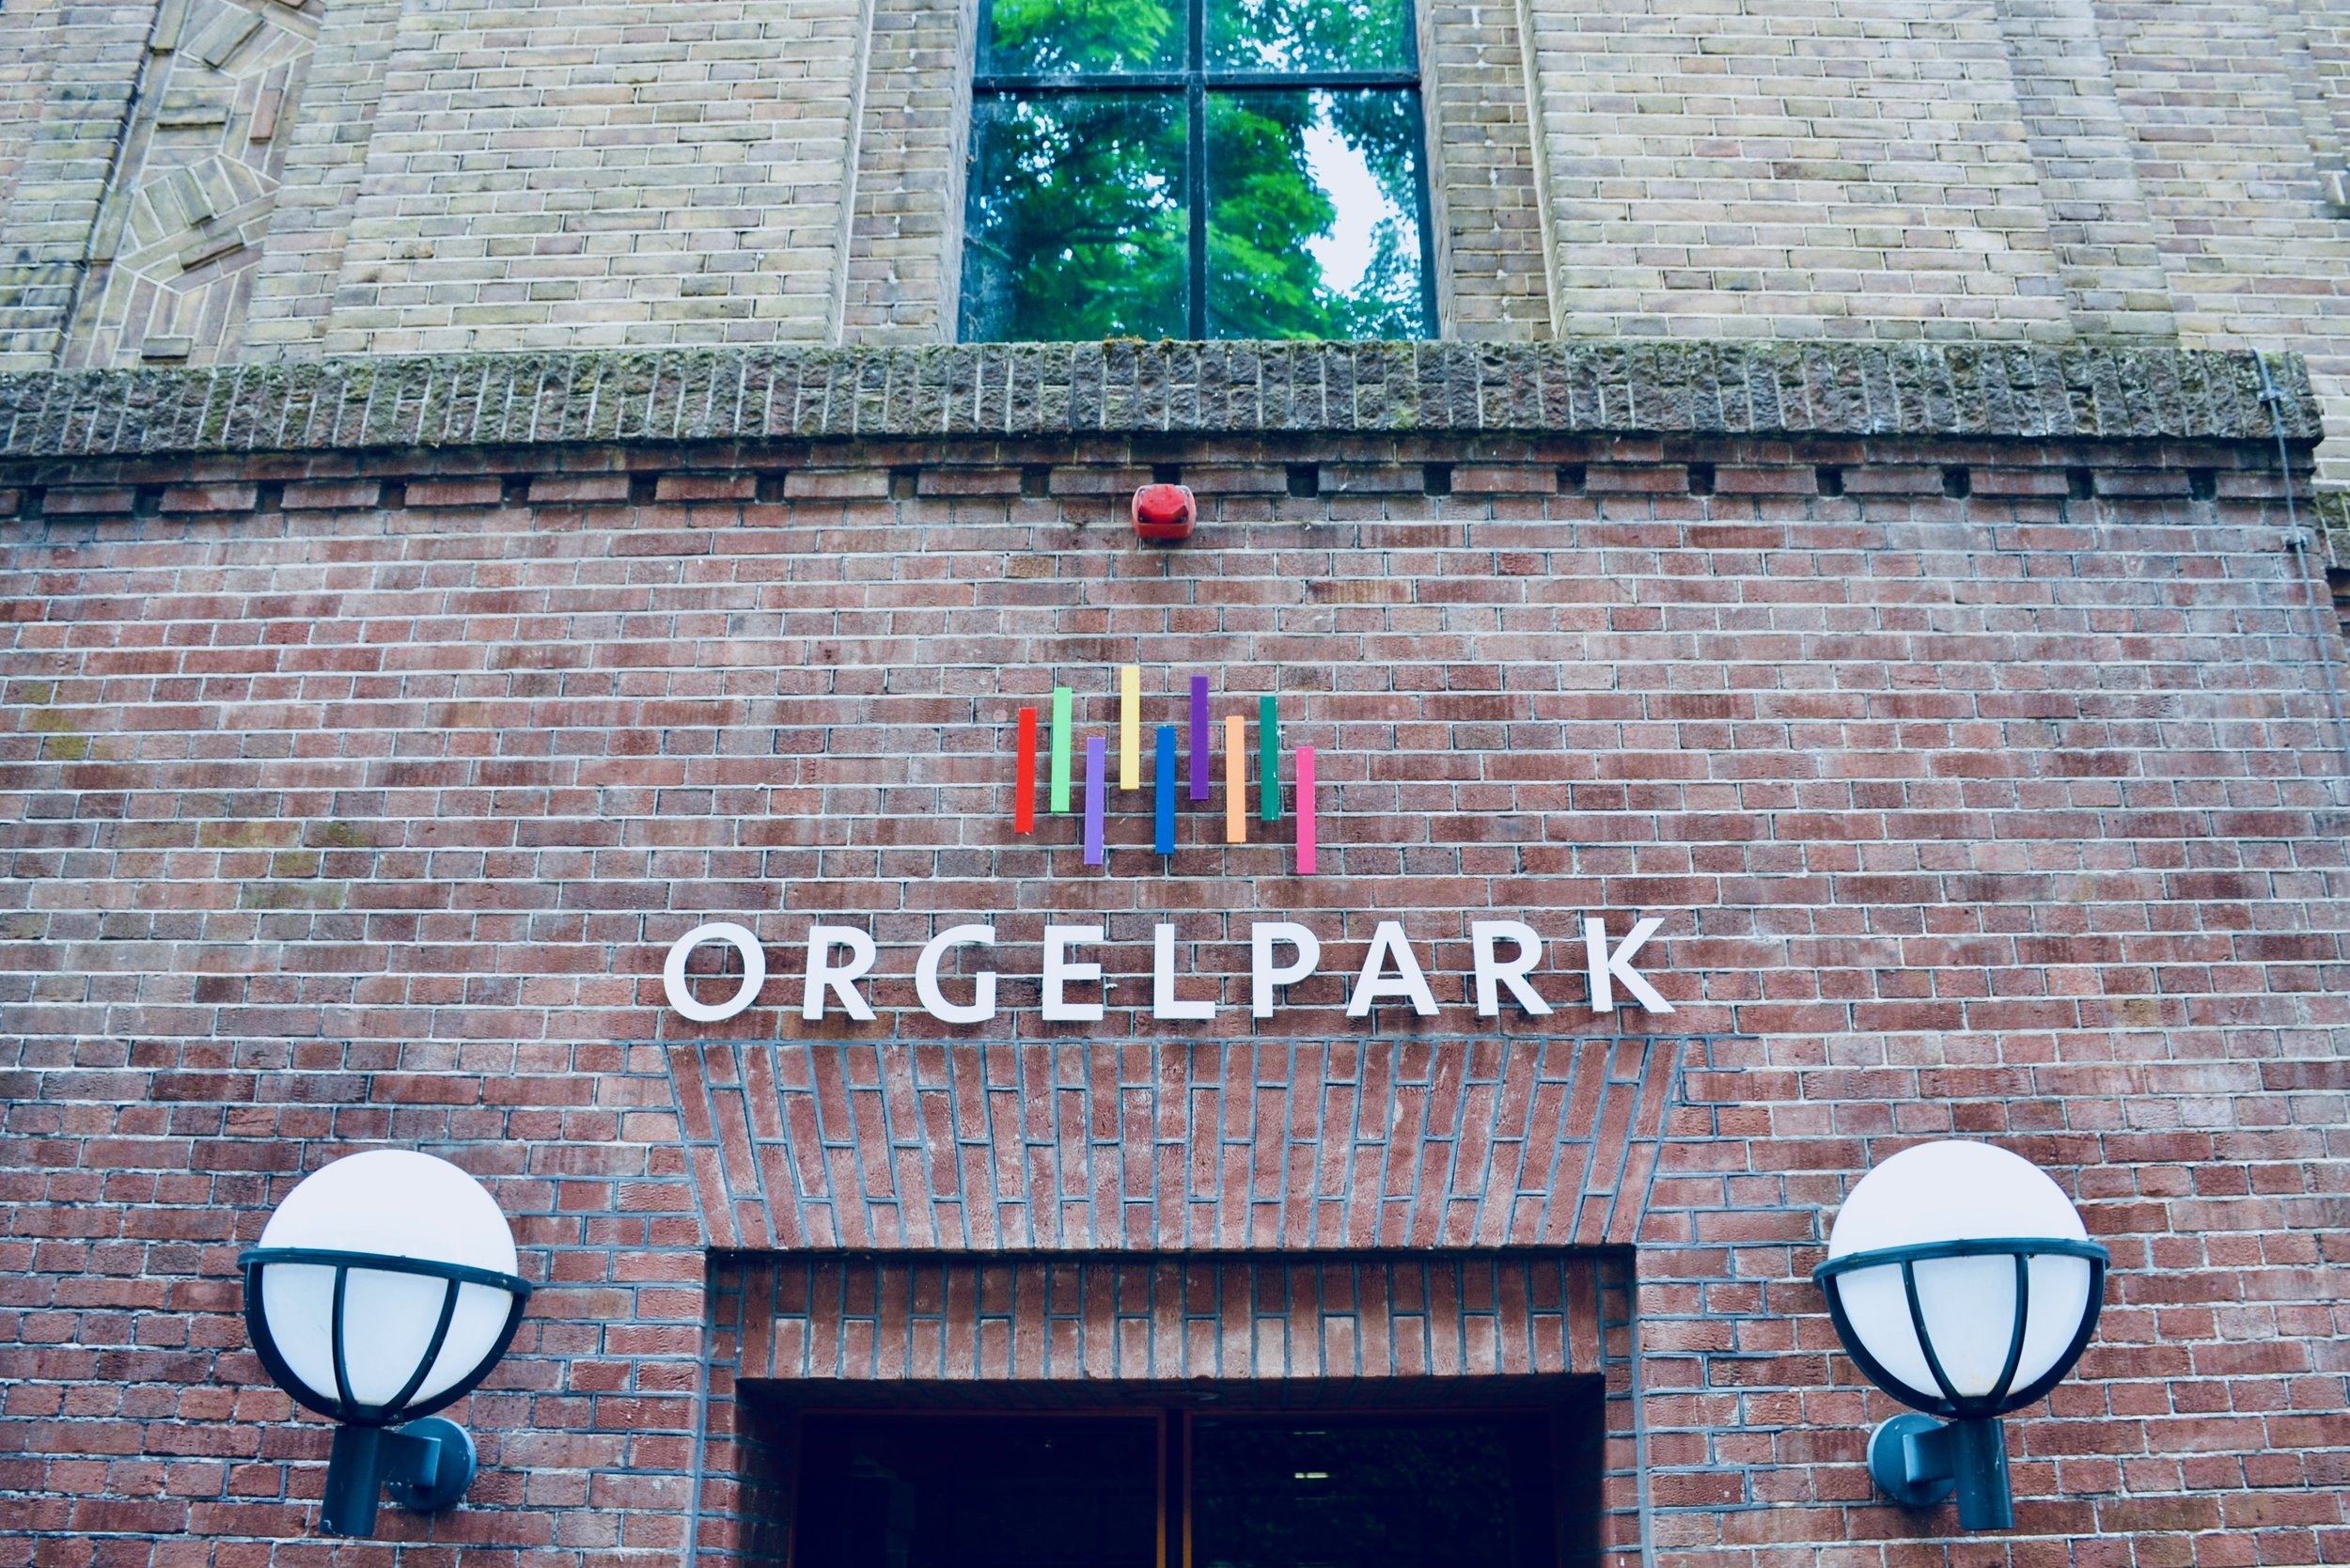 Entrance to the Orgelpark, Amsterdam